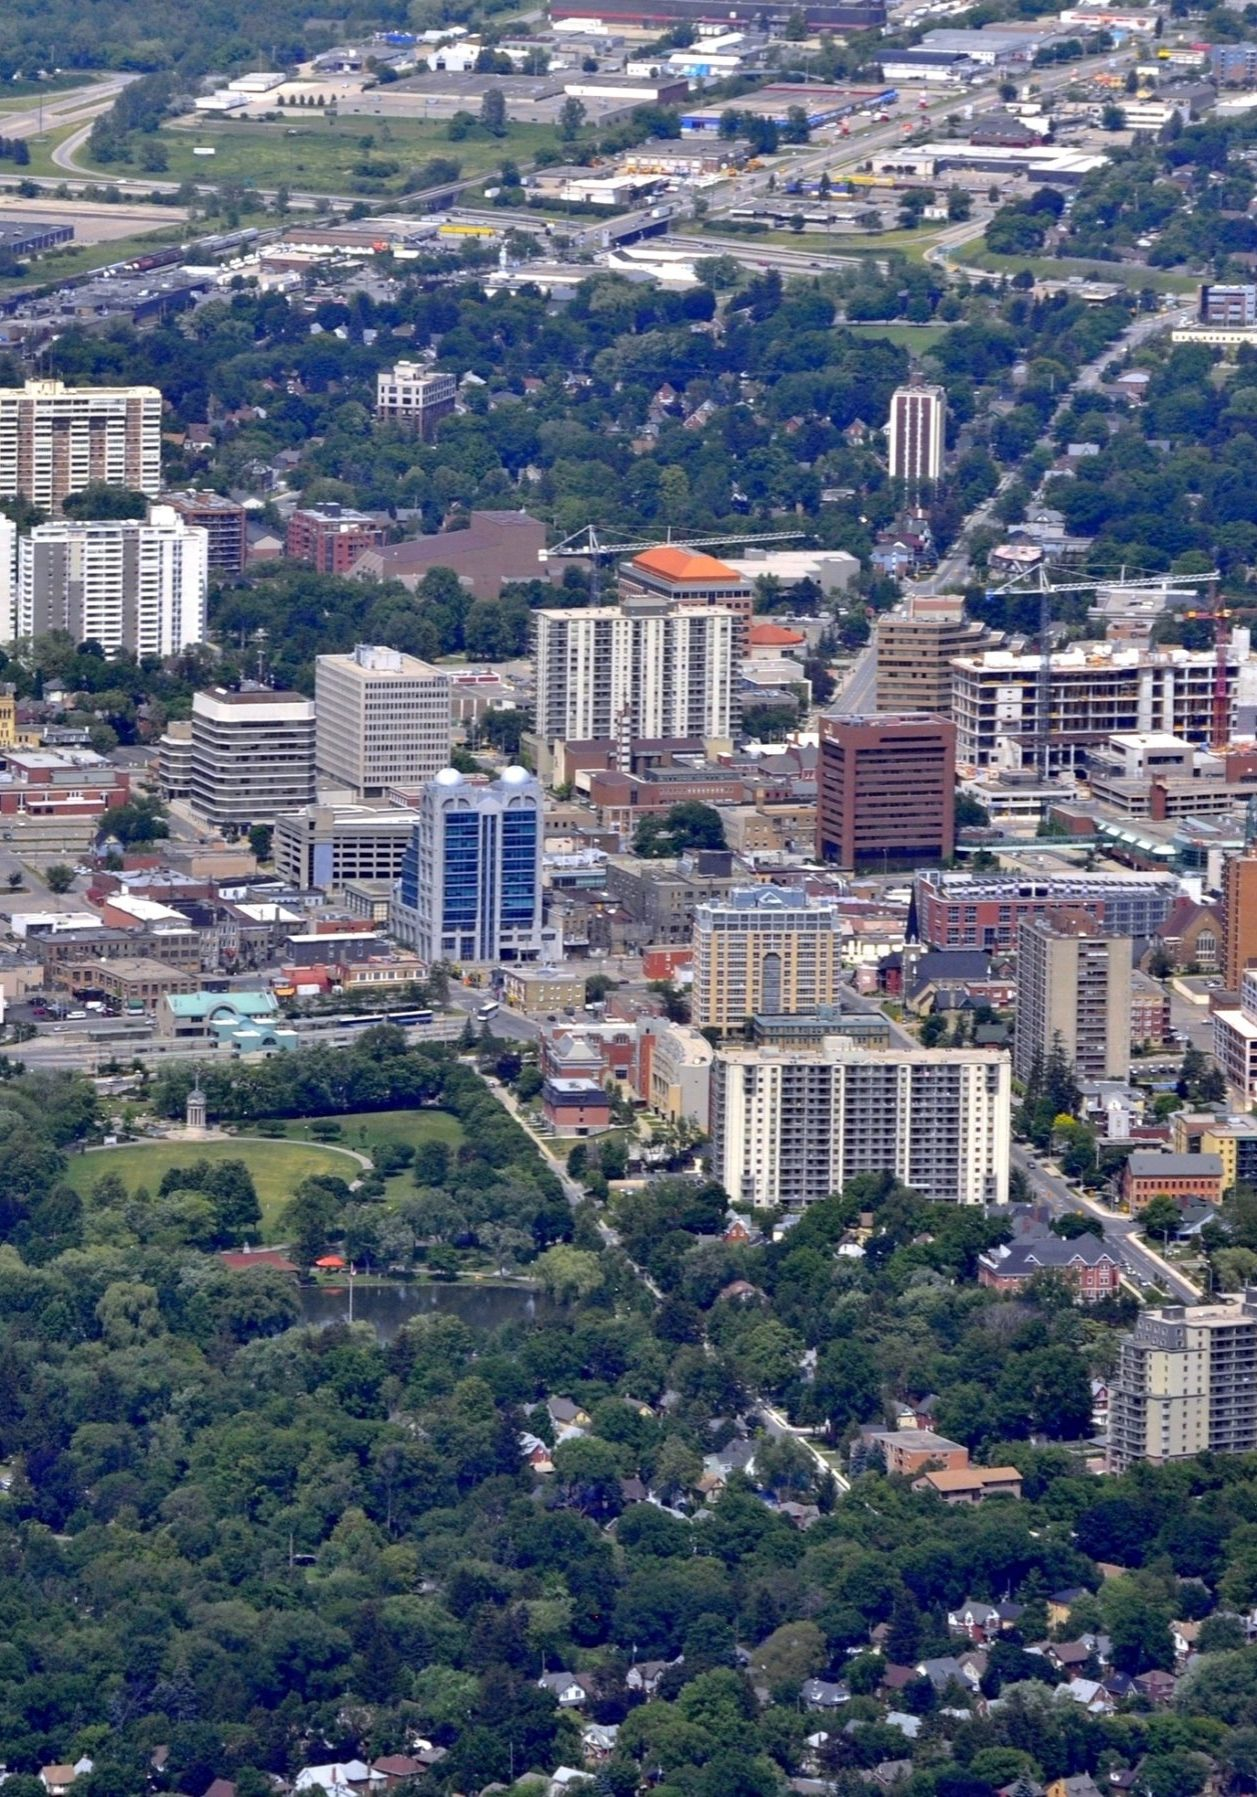 aerial view of  the downtown area Kitchener Waterloo, Ontario Canada